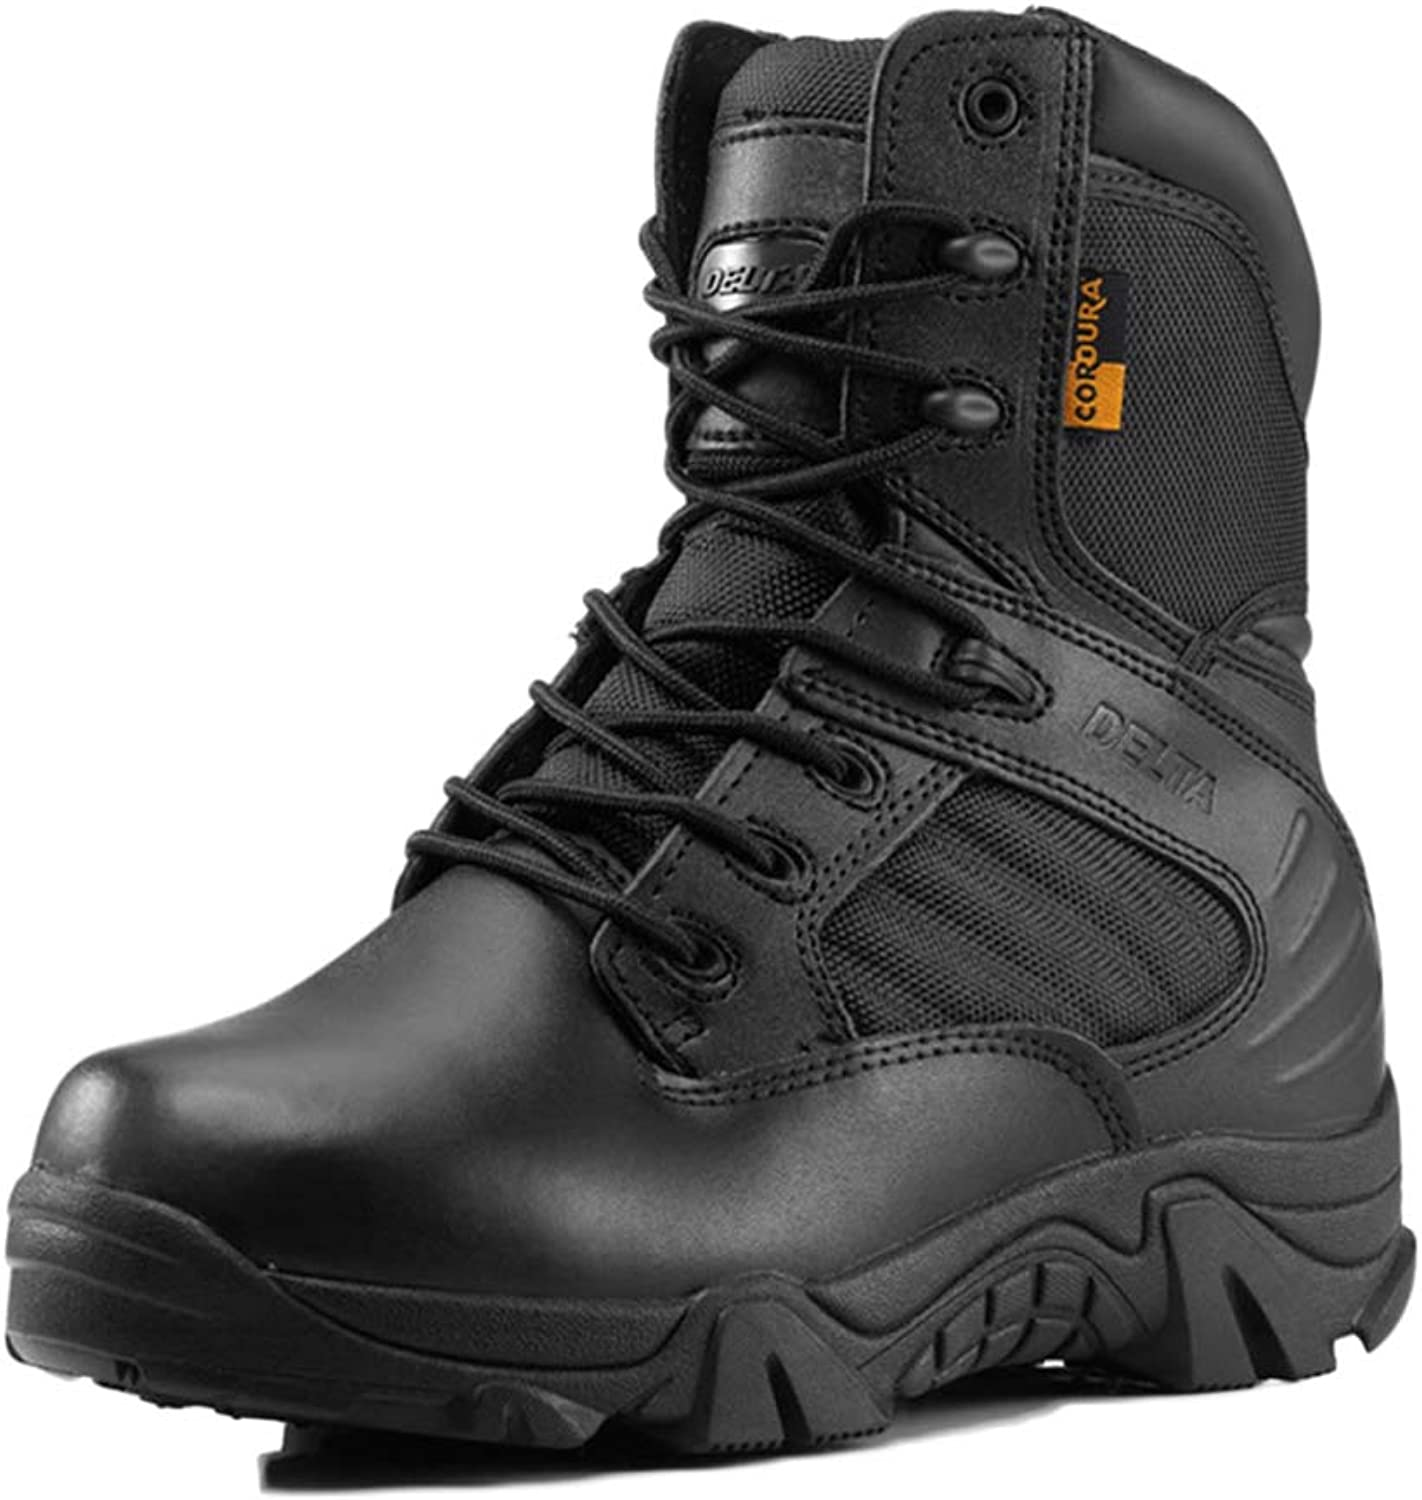 Men Boots Tactical Boots Desert Breathable Work Boots Lightweight High-top Lace-up shoes Non-Slip Ankle Warm Snow Boots